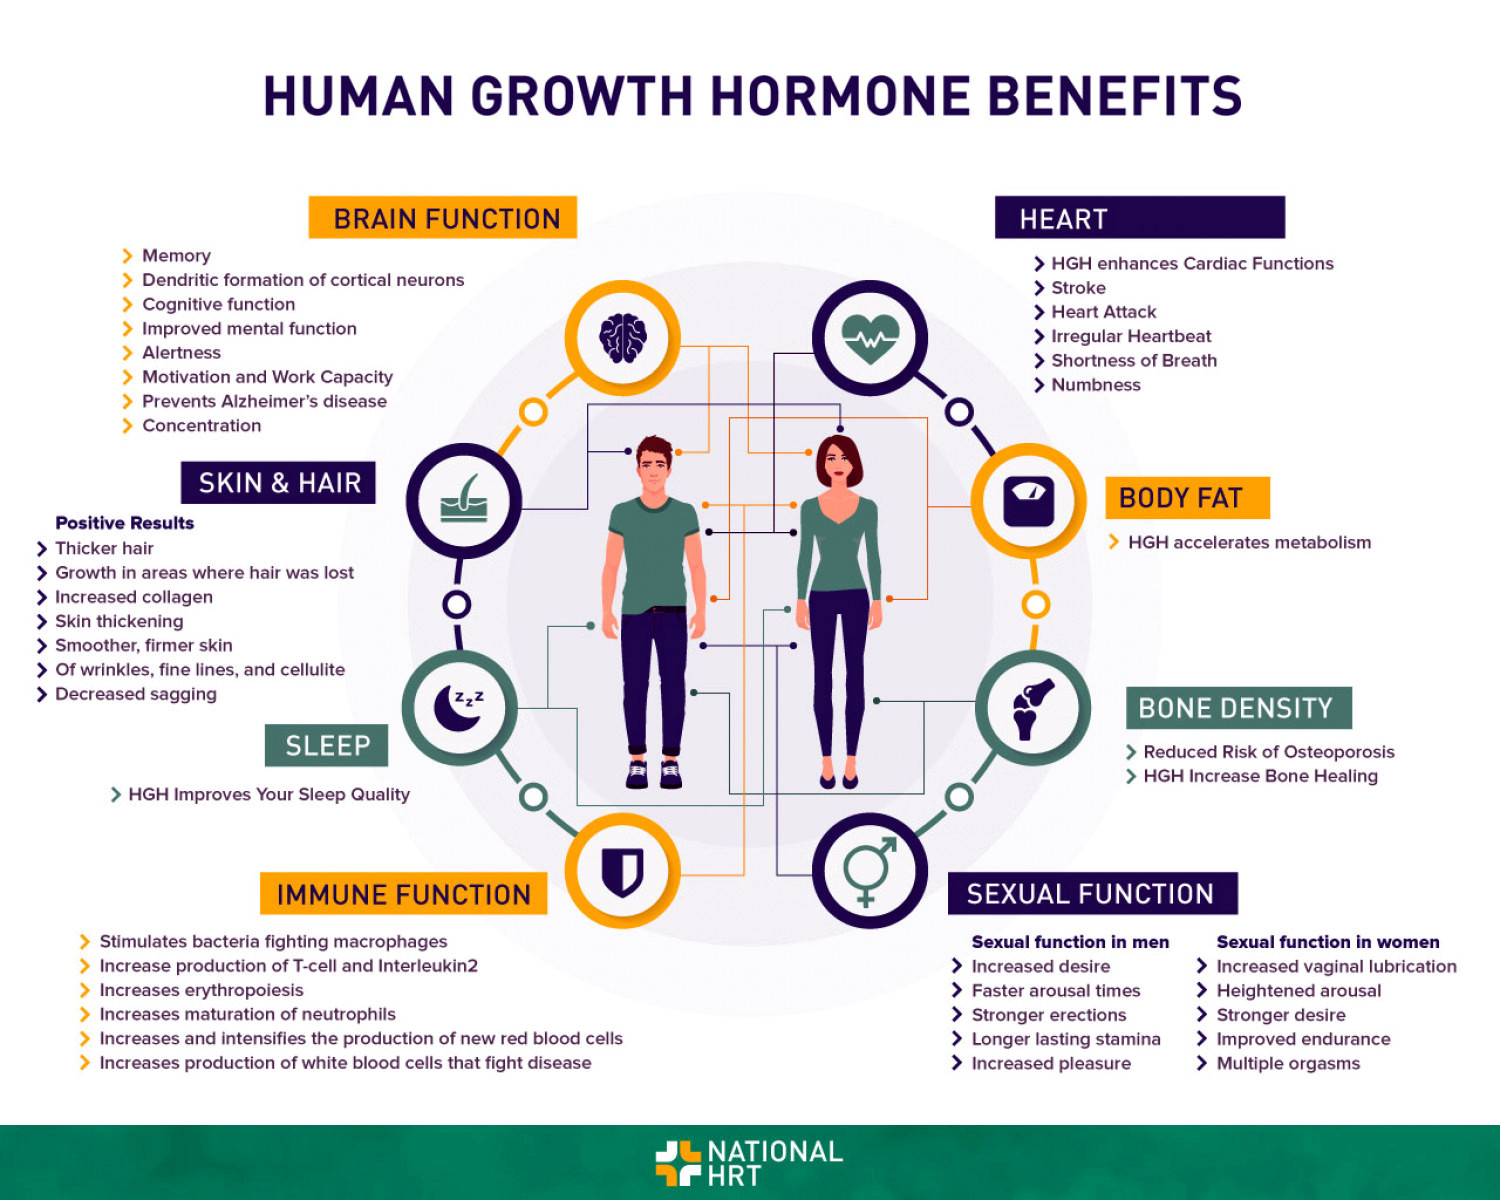 Benefits of HGH supplement